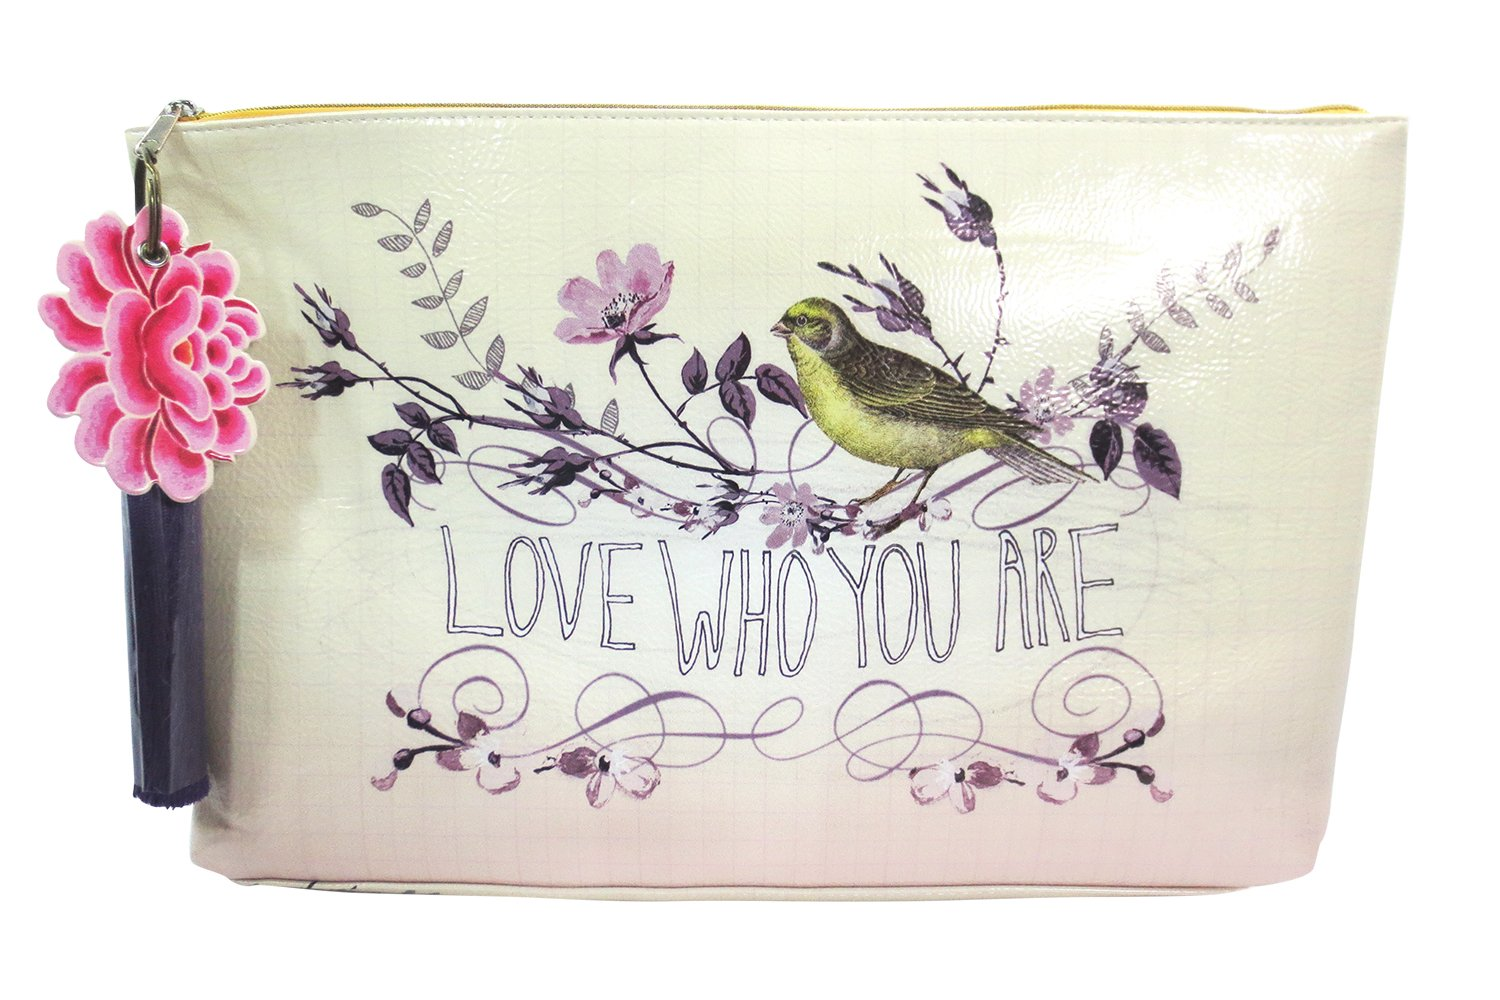 Vintage Inspired Bird & Floral Art '' Love Who You Are'' Large Make-up or Accessory Travel Bag